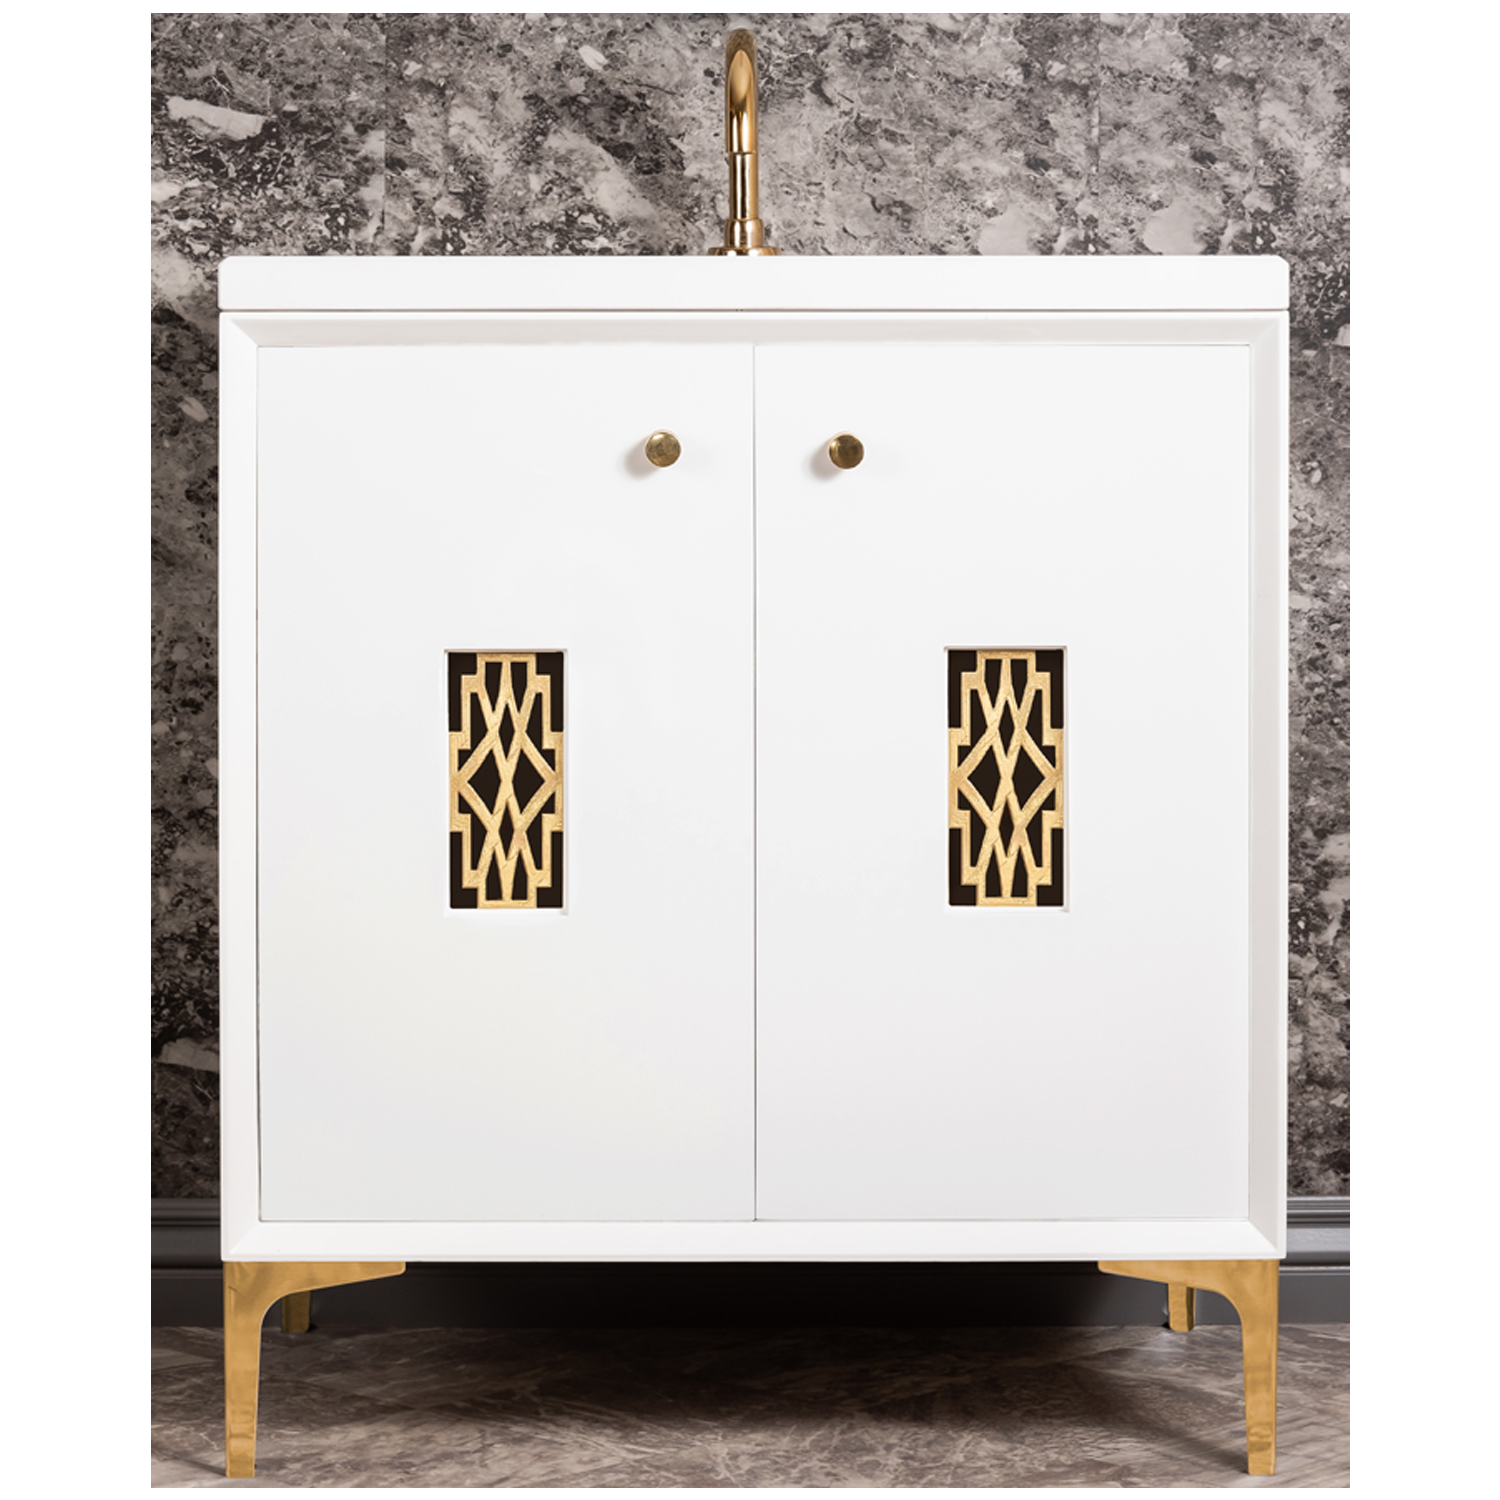 """VAN30W-011   30"""" White Frame with Deco  - Shown with PB (Polished Brass)"""